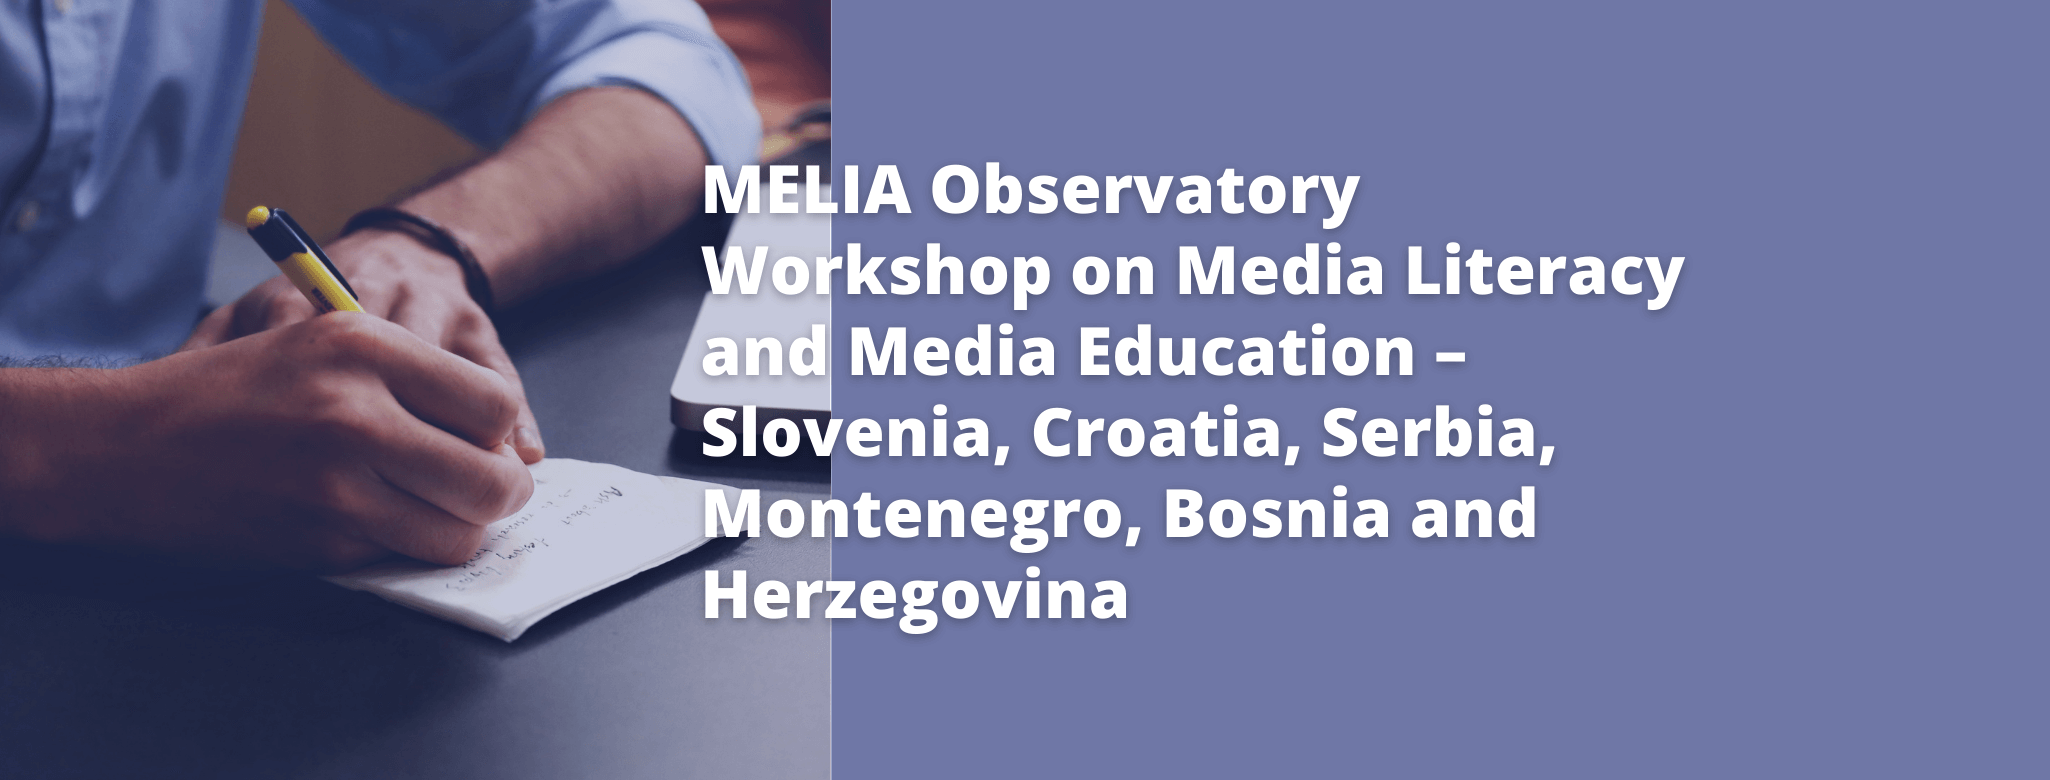 MELIA Observatory – Media Literacy Observatory for Active Citizenship and Sustainable Democracy